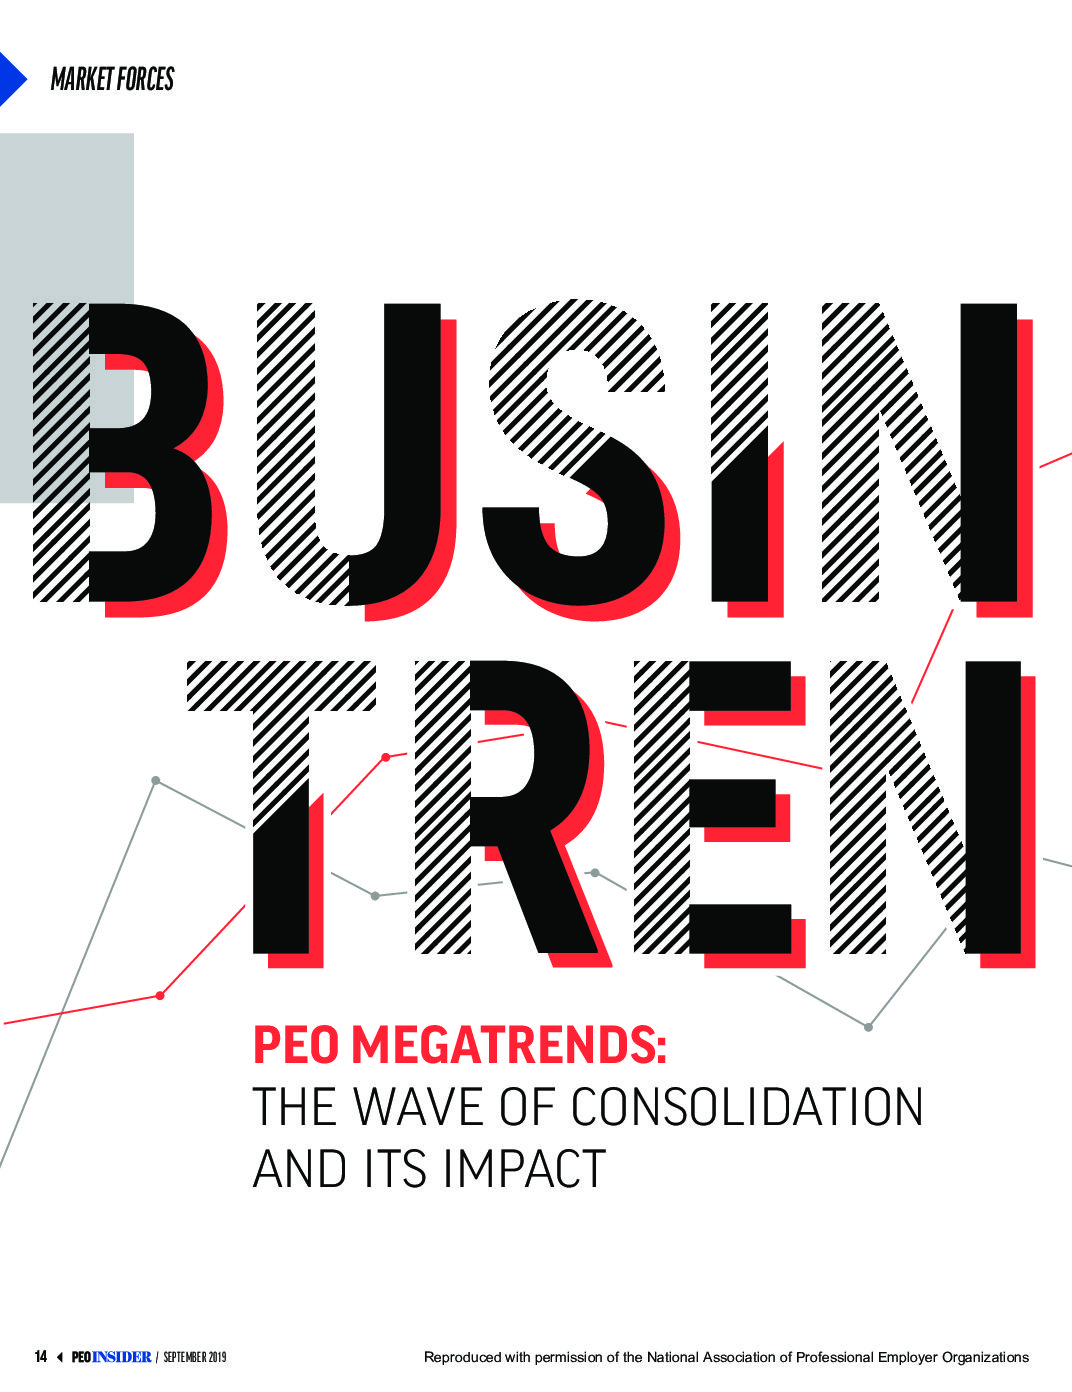 PEO MEGATRENDS: The Wave of Consolidation and Its Impact